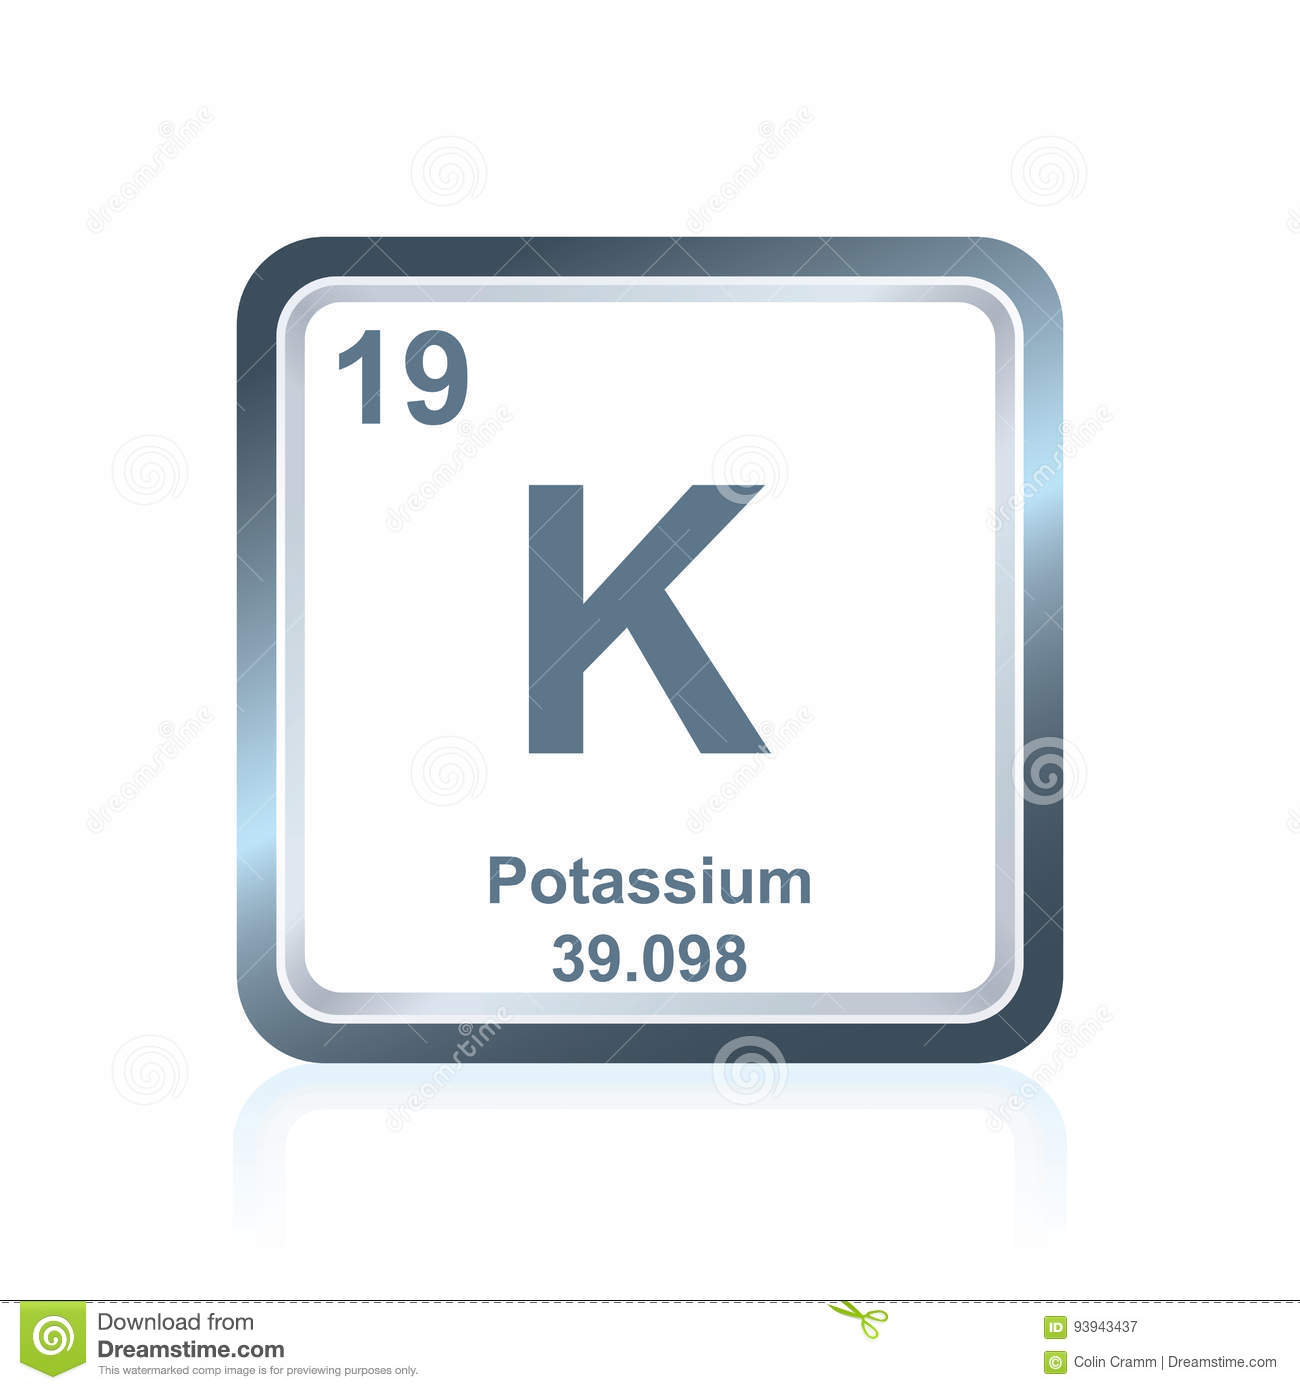 Chemical element potassium from the periodic table stock vector chemical element potassium from the periodic table biocorpaavc